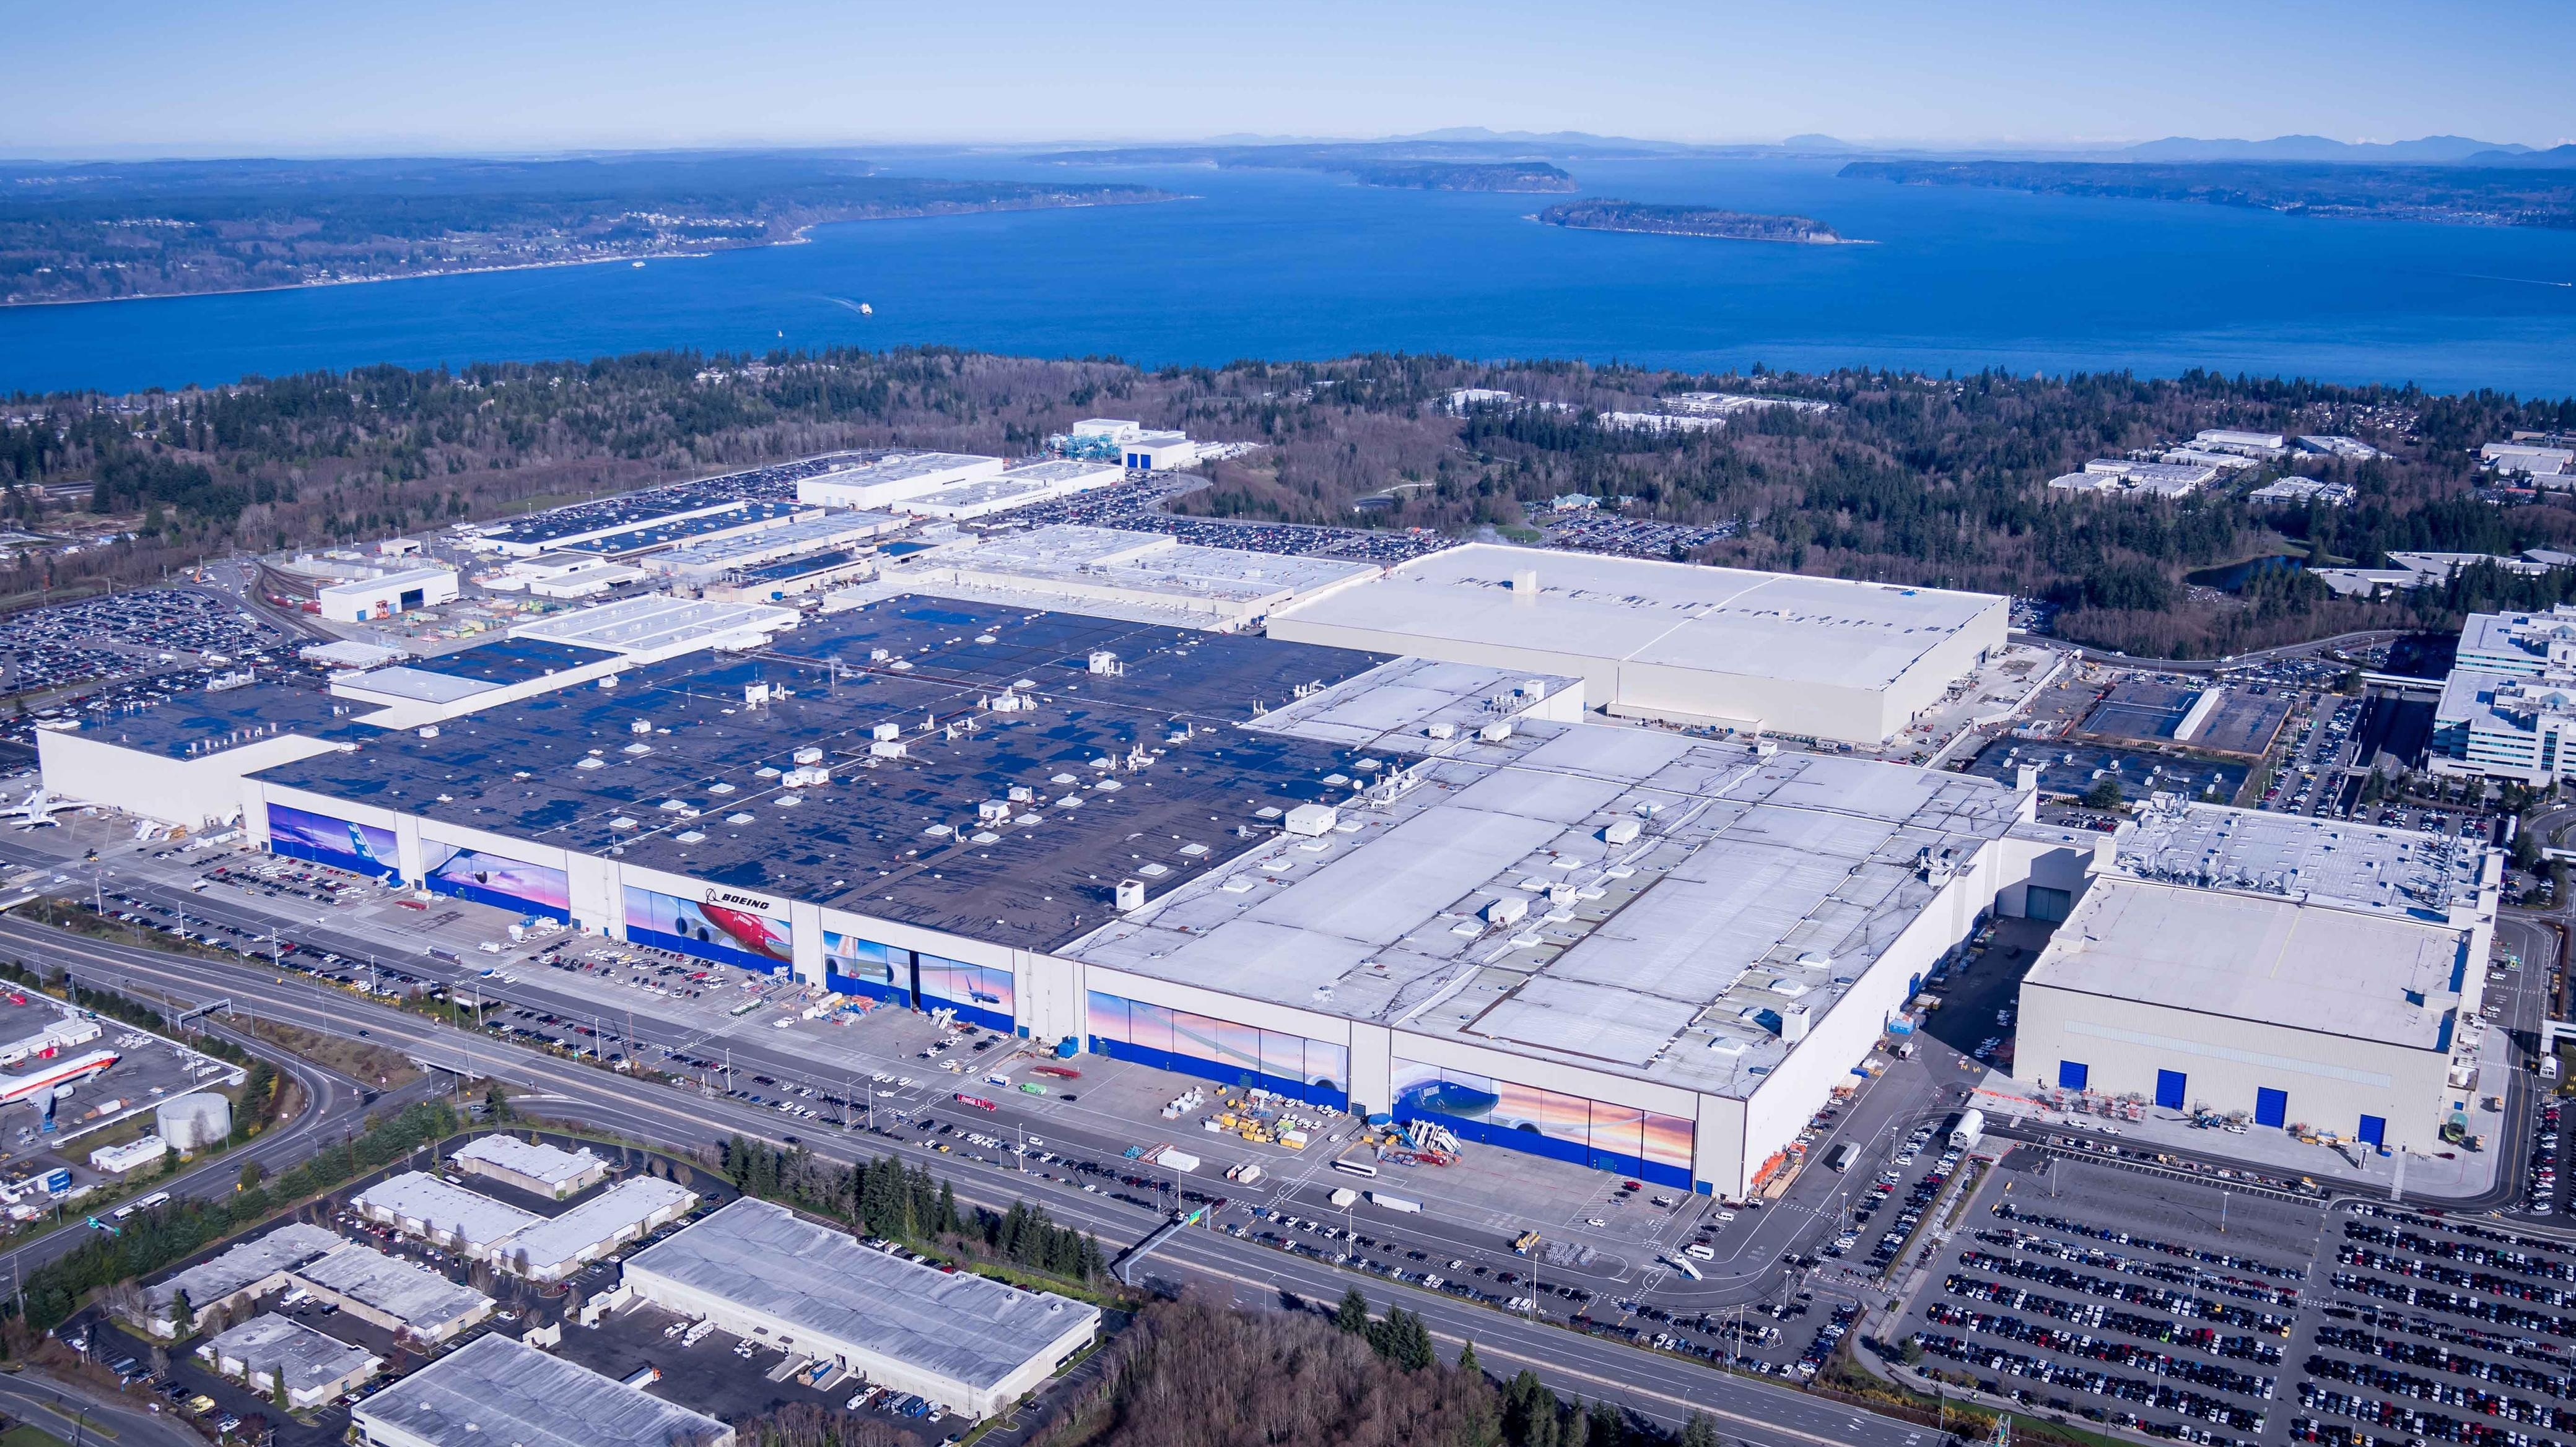 Boeing's Everett Factory Complex Is The Biggest Building In pertaining to Boeing Everett Factory Site Map